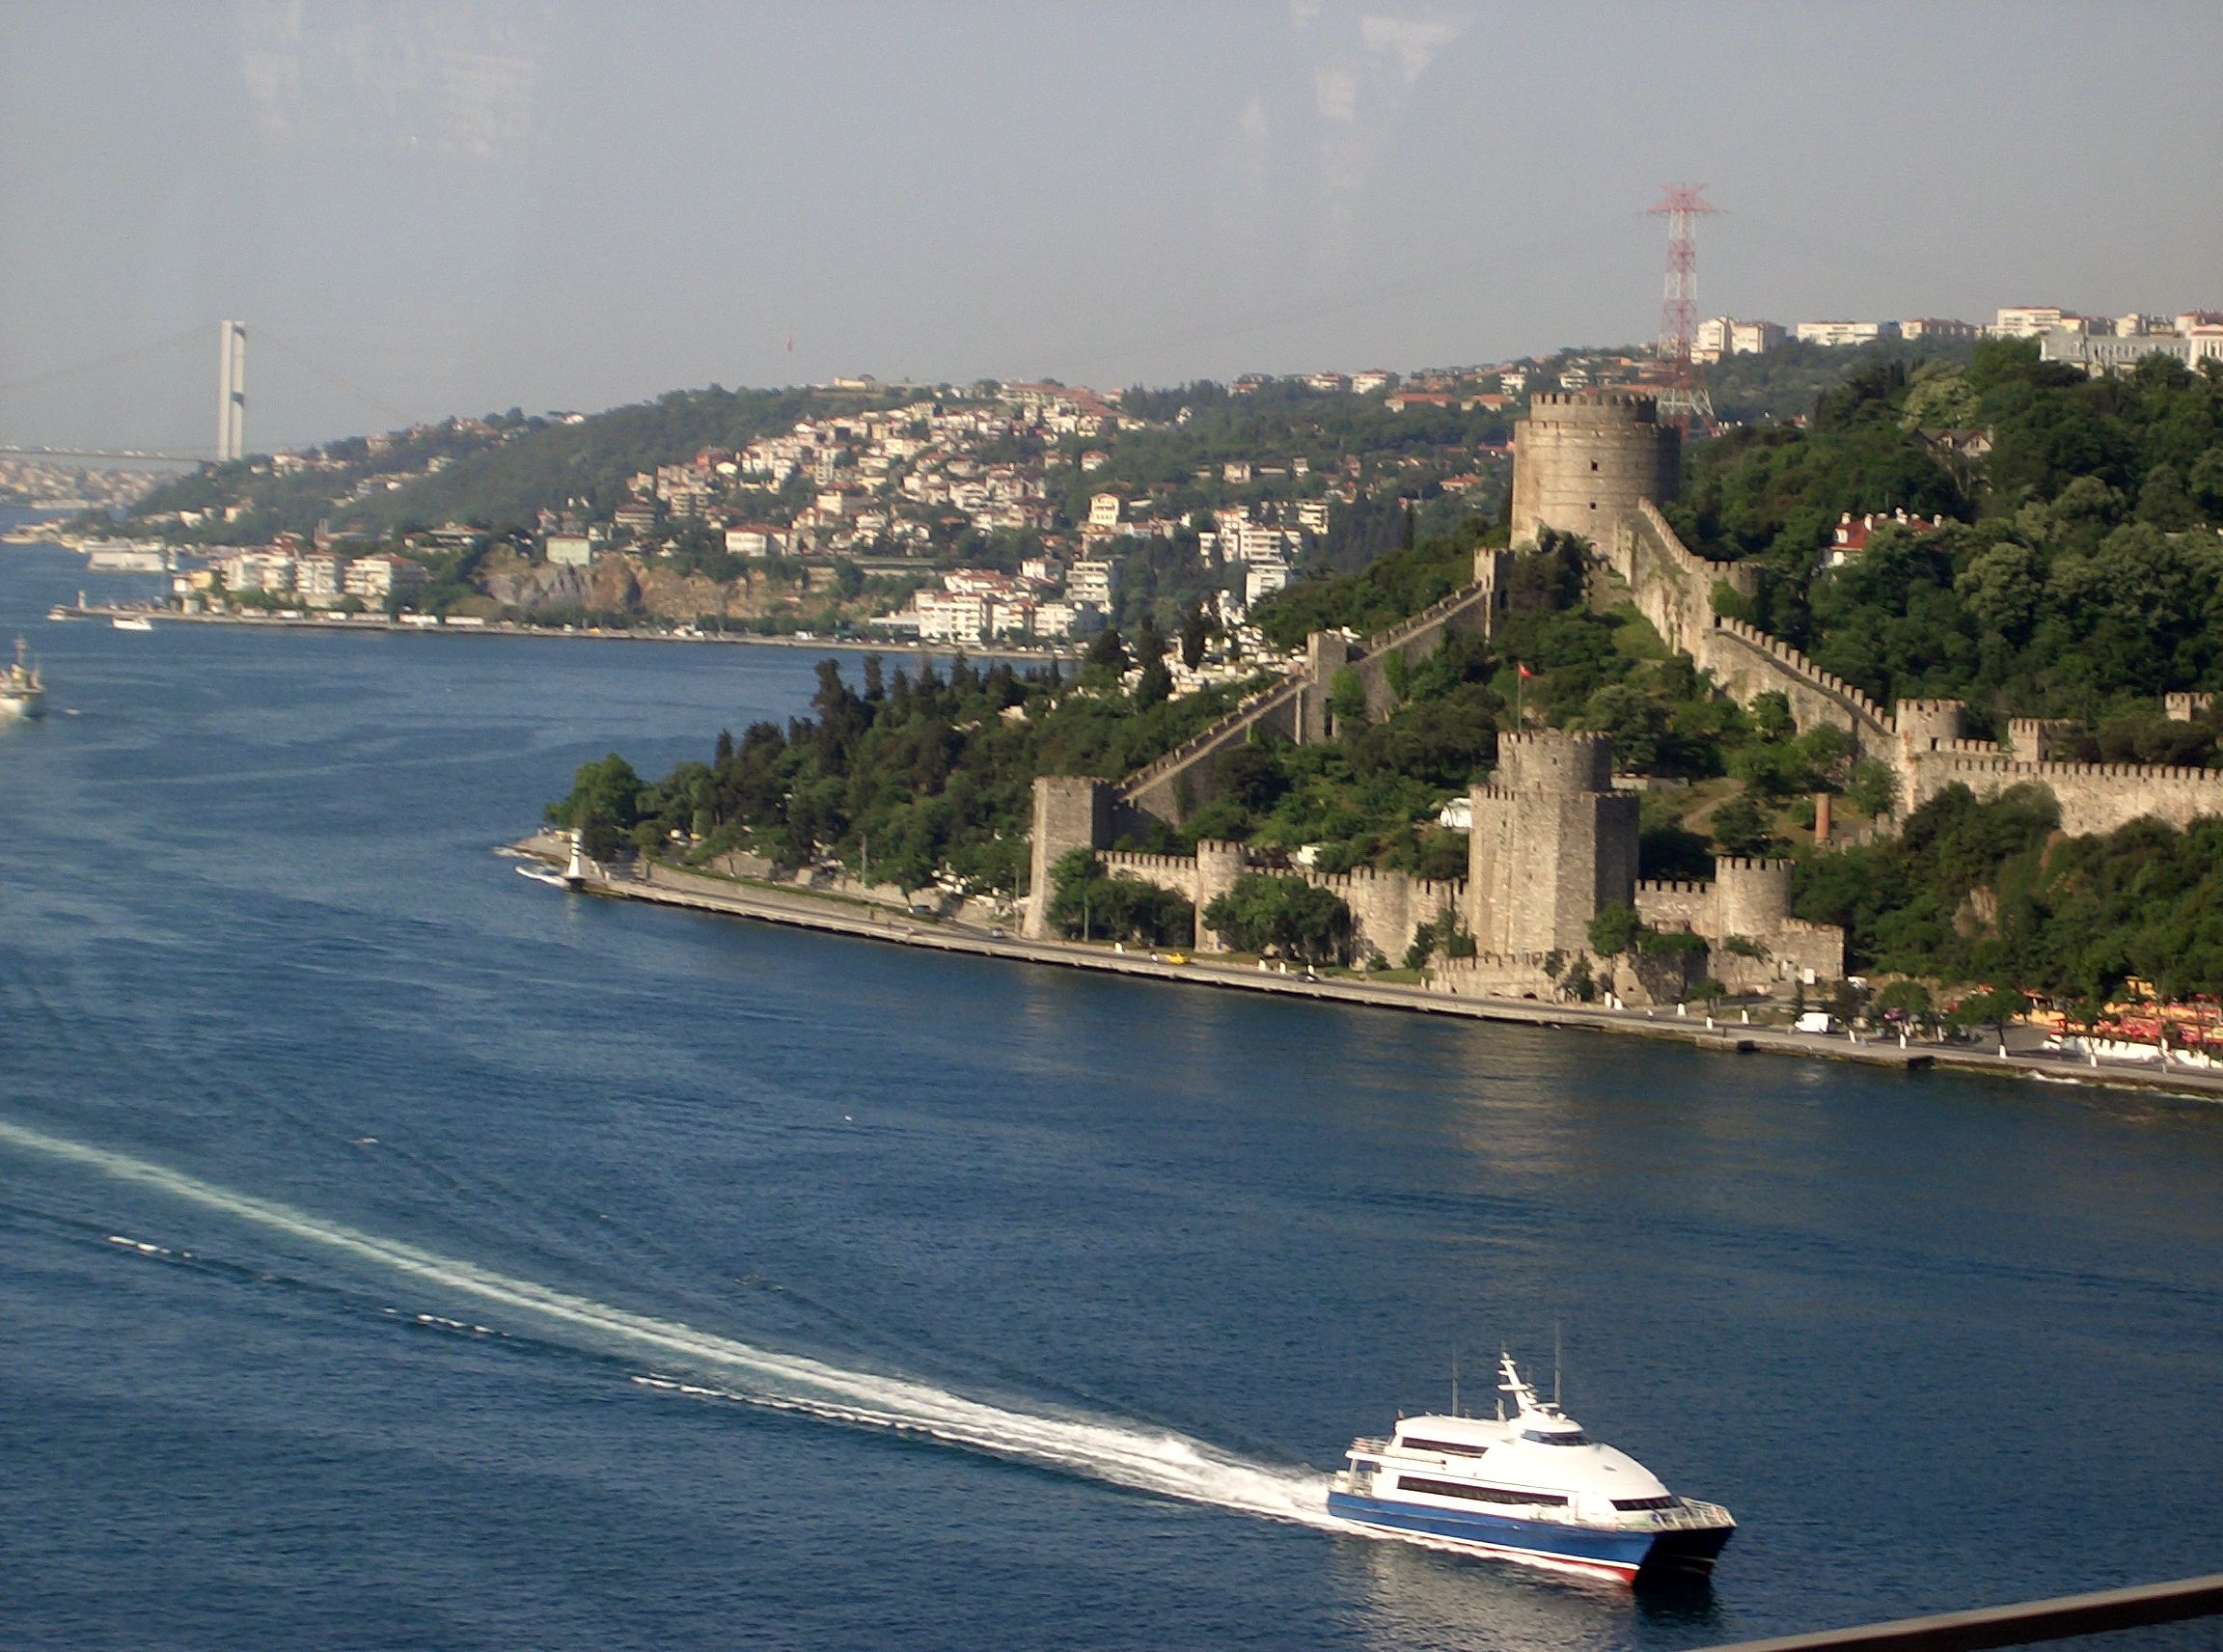 File:İstanbul waterfront.jpg - Wikimedia Commons